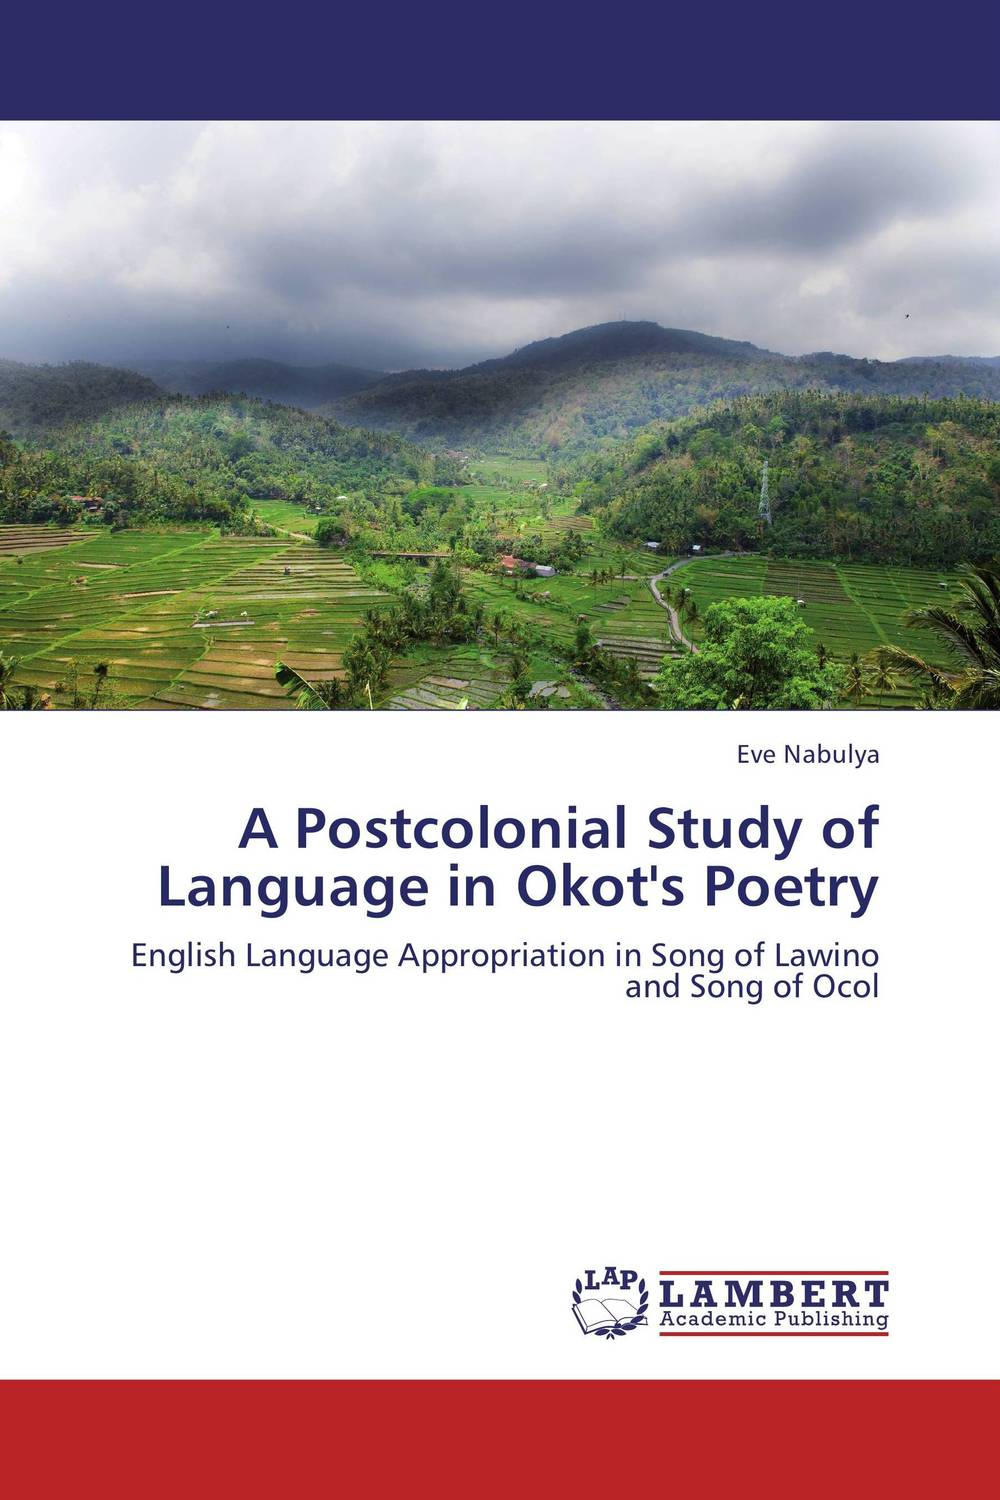 A Postcolonial Study of Language in Okot's Poetry cultural and linguistic hybridity in postcolonial text